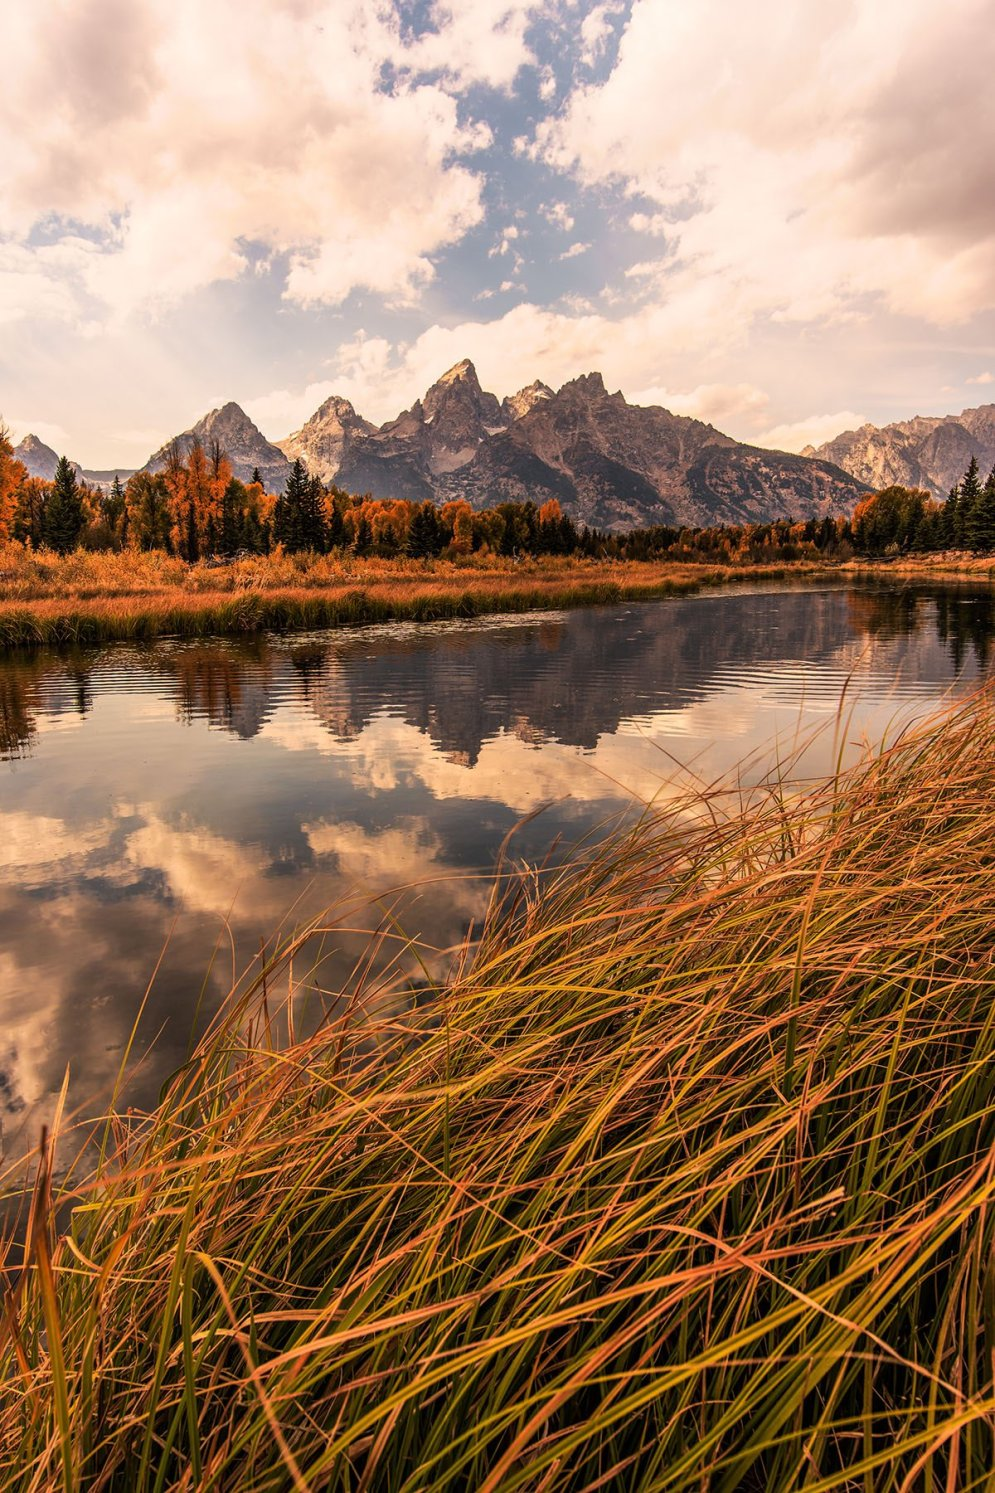 Wyoming's Grand Teton National Park. Photo by Josh Packer. Tweeted by the US Department of the Interior, 10/13/16.